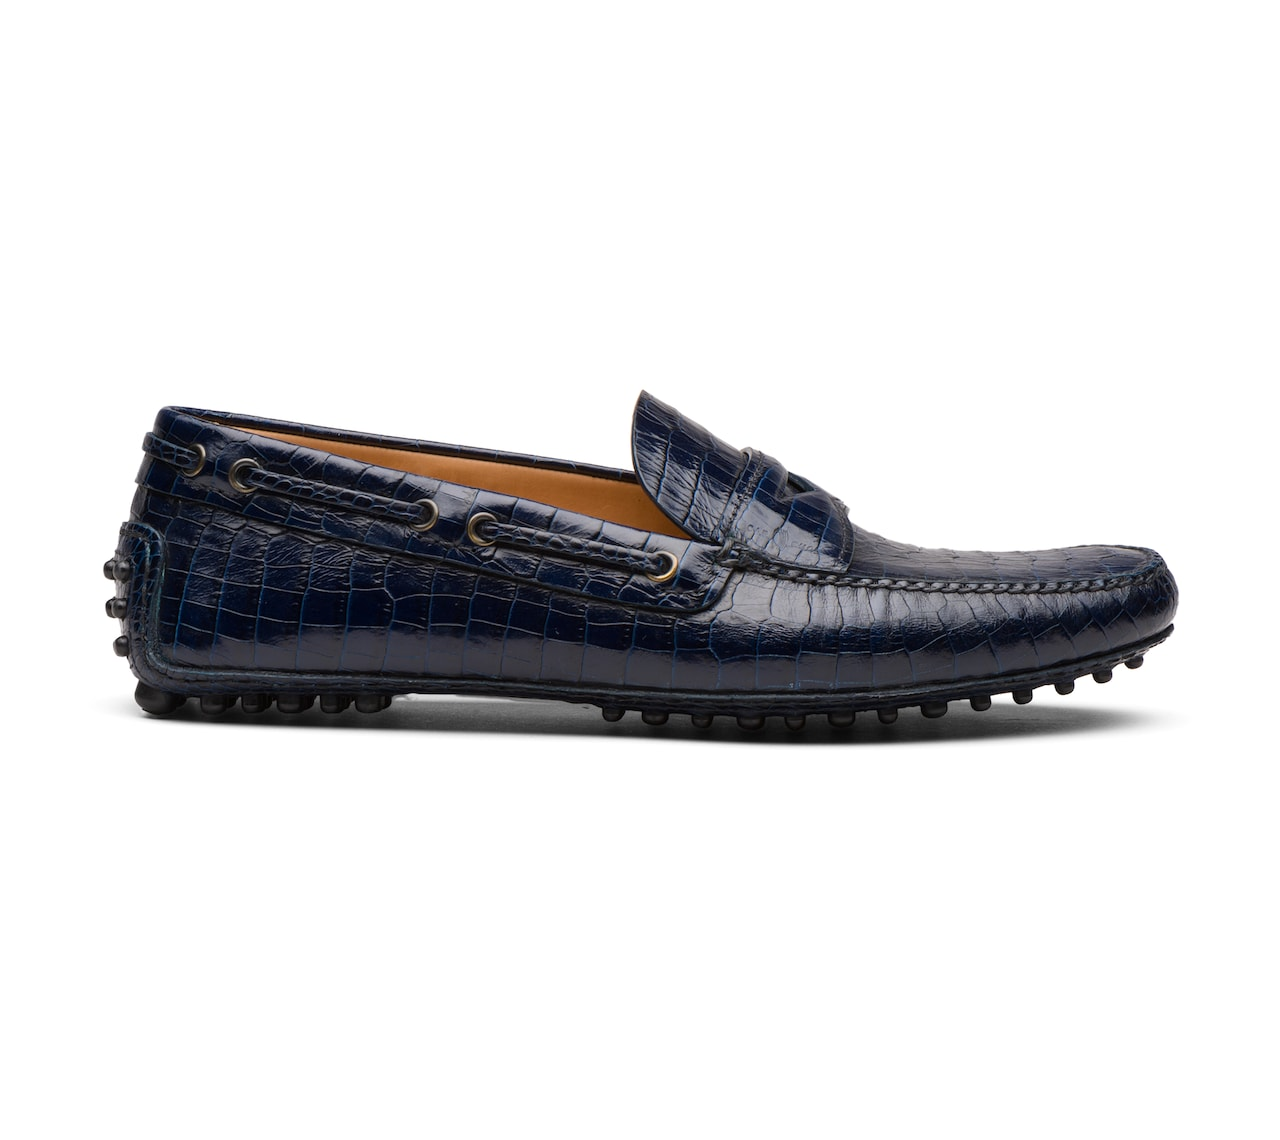 CROCO PRINTED LEATHER DRIVING SHOES BLUE